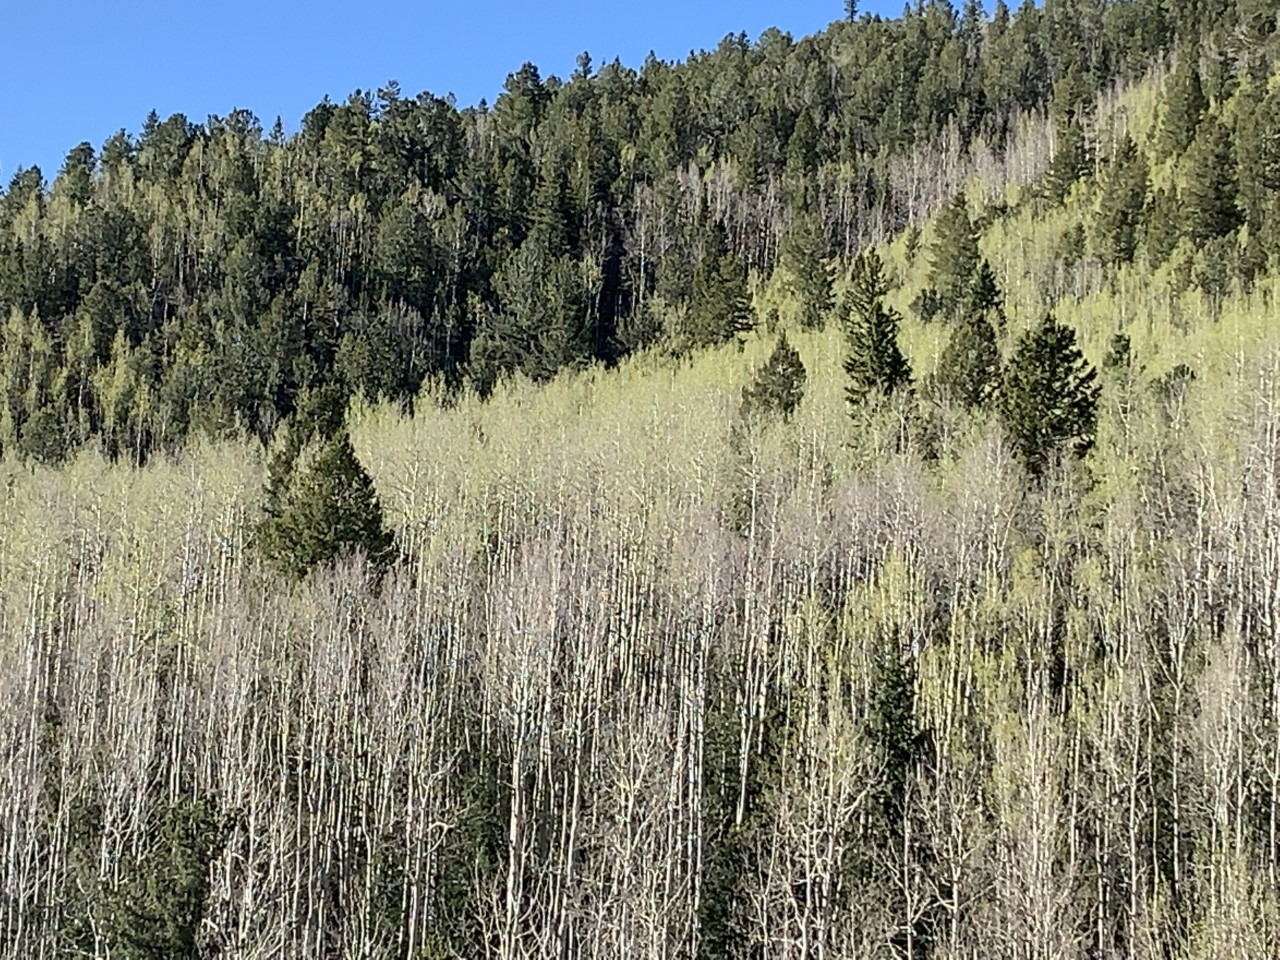 A look at the barely budding Aspens